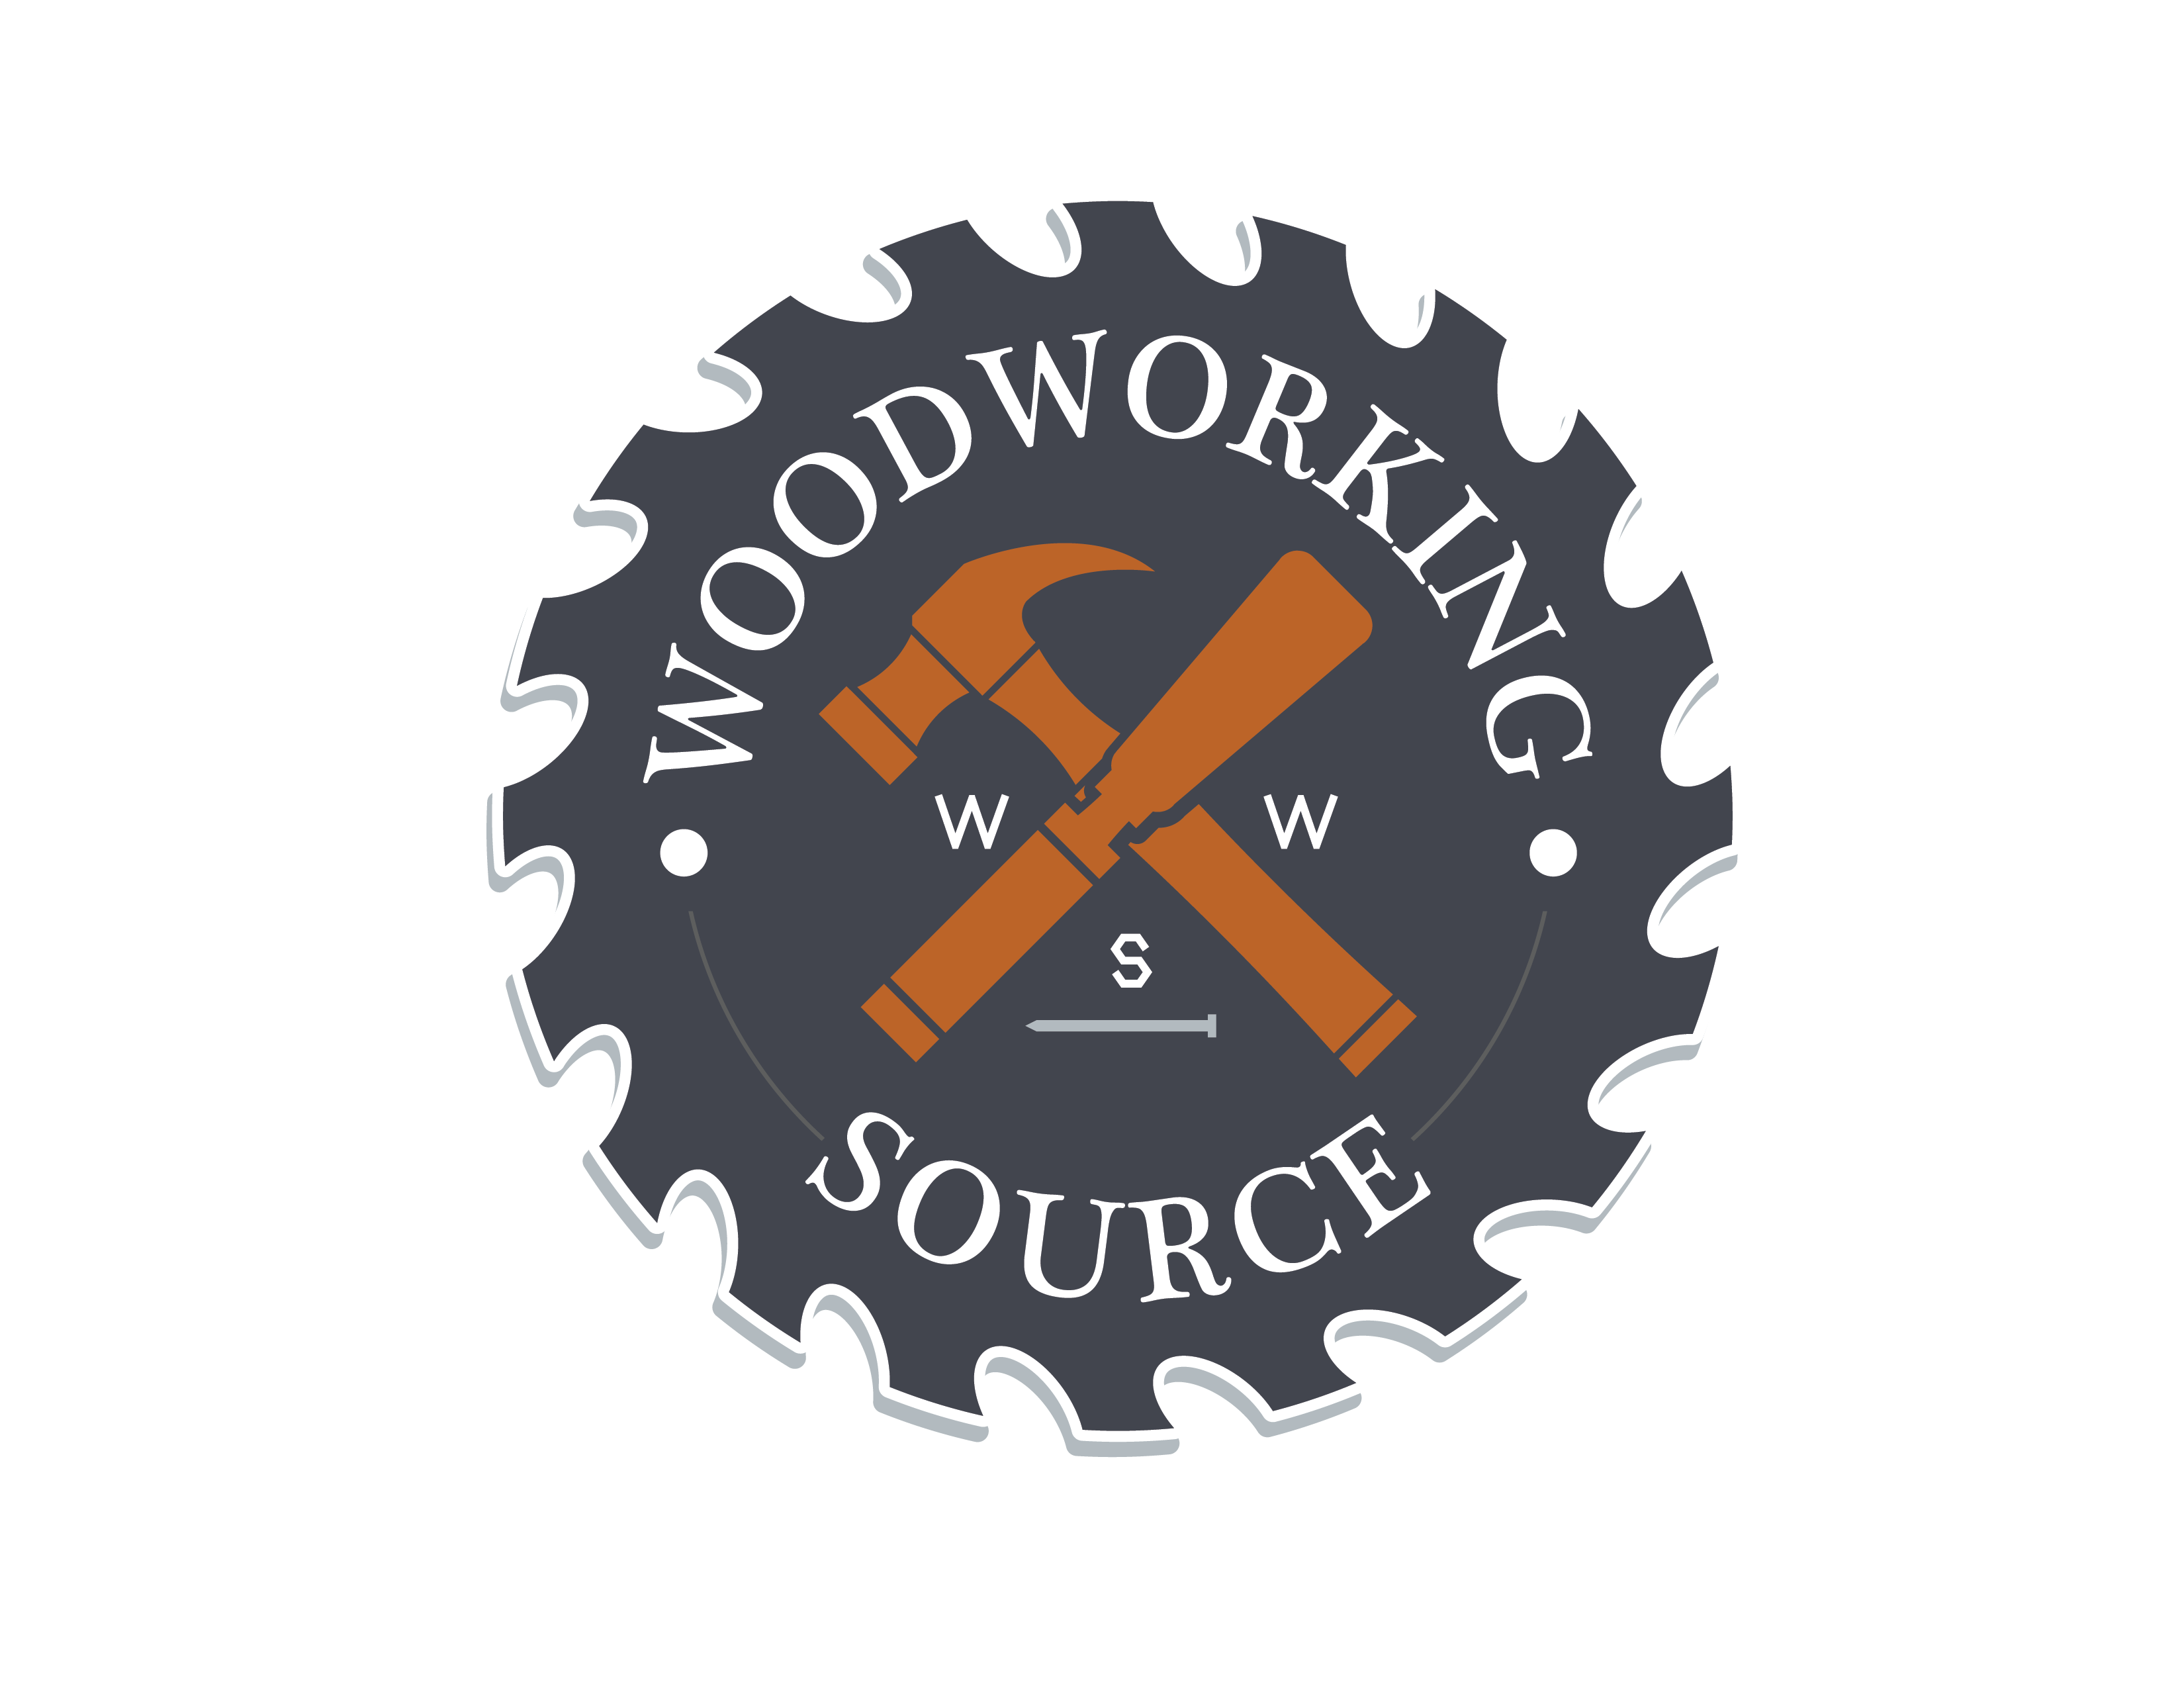 Woodworking Source